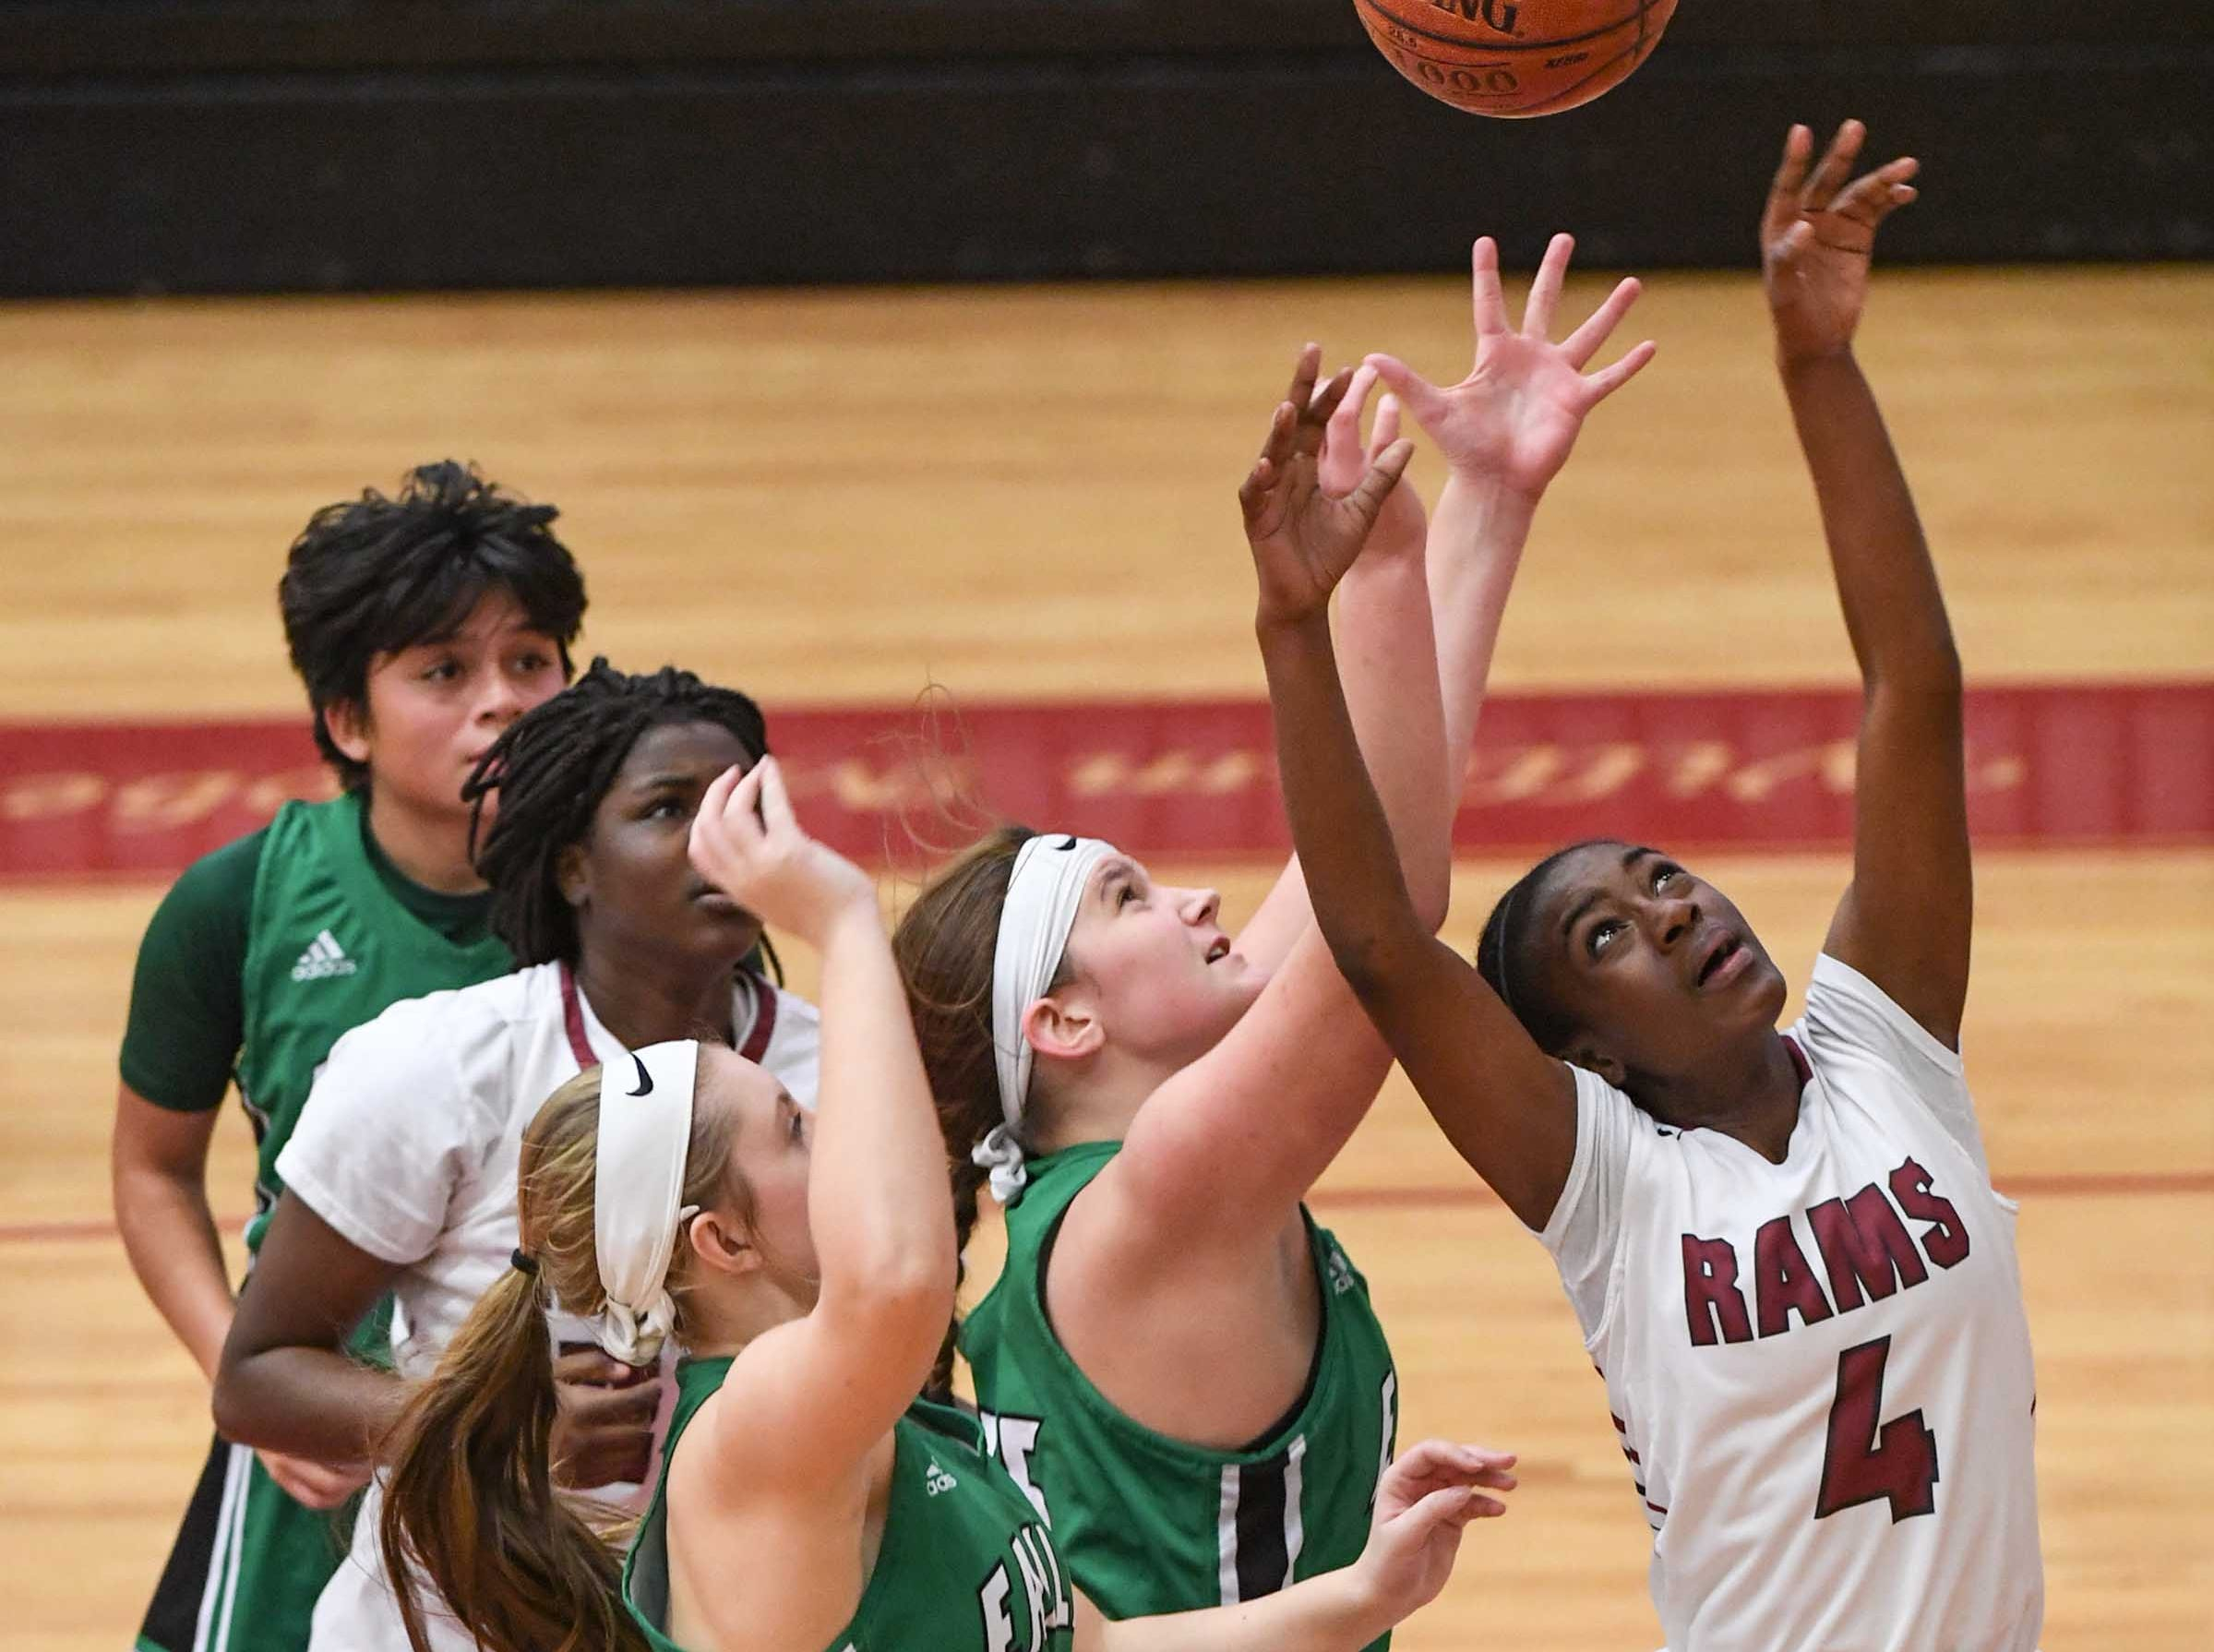 Westside freshman Aziyah Bell(4) shoots between Easley players during the third quarter at Westside High School in Anderson on Friday.